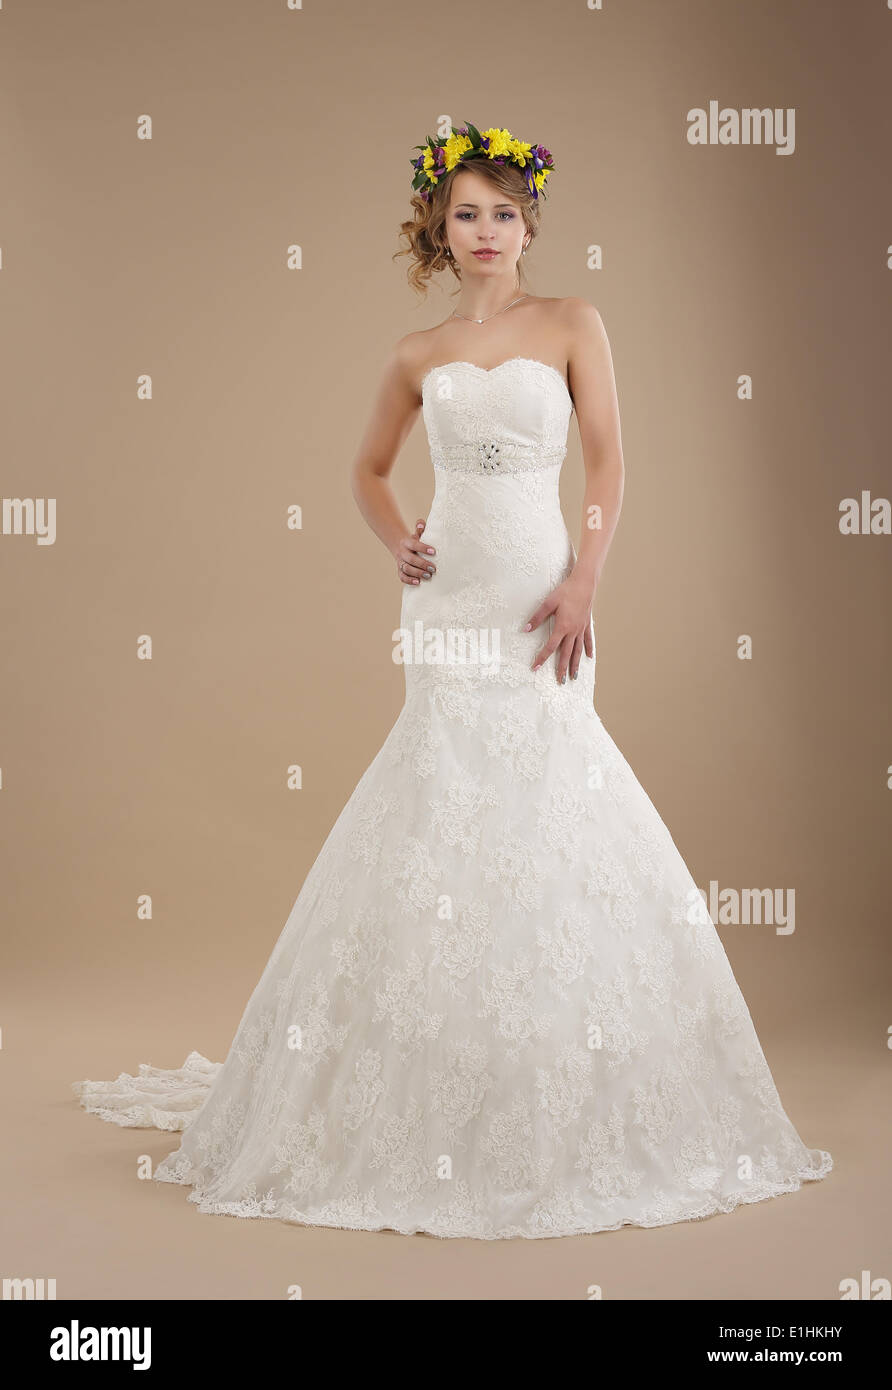 Charming Woman in Bridal Dress with Wreath of Flowers - Stock Image